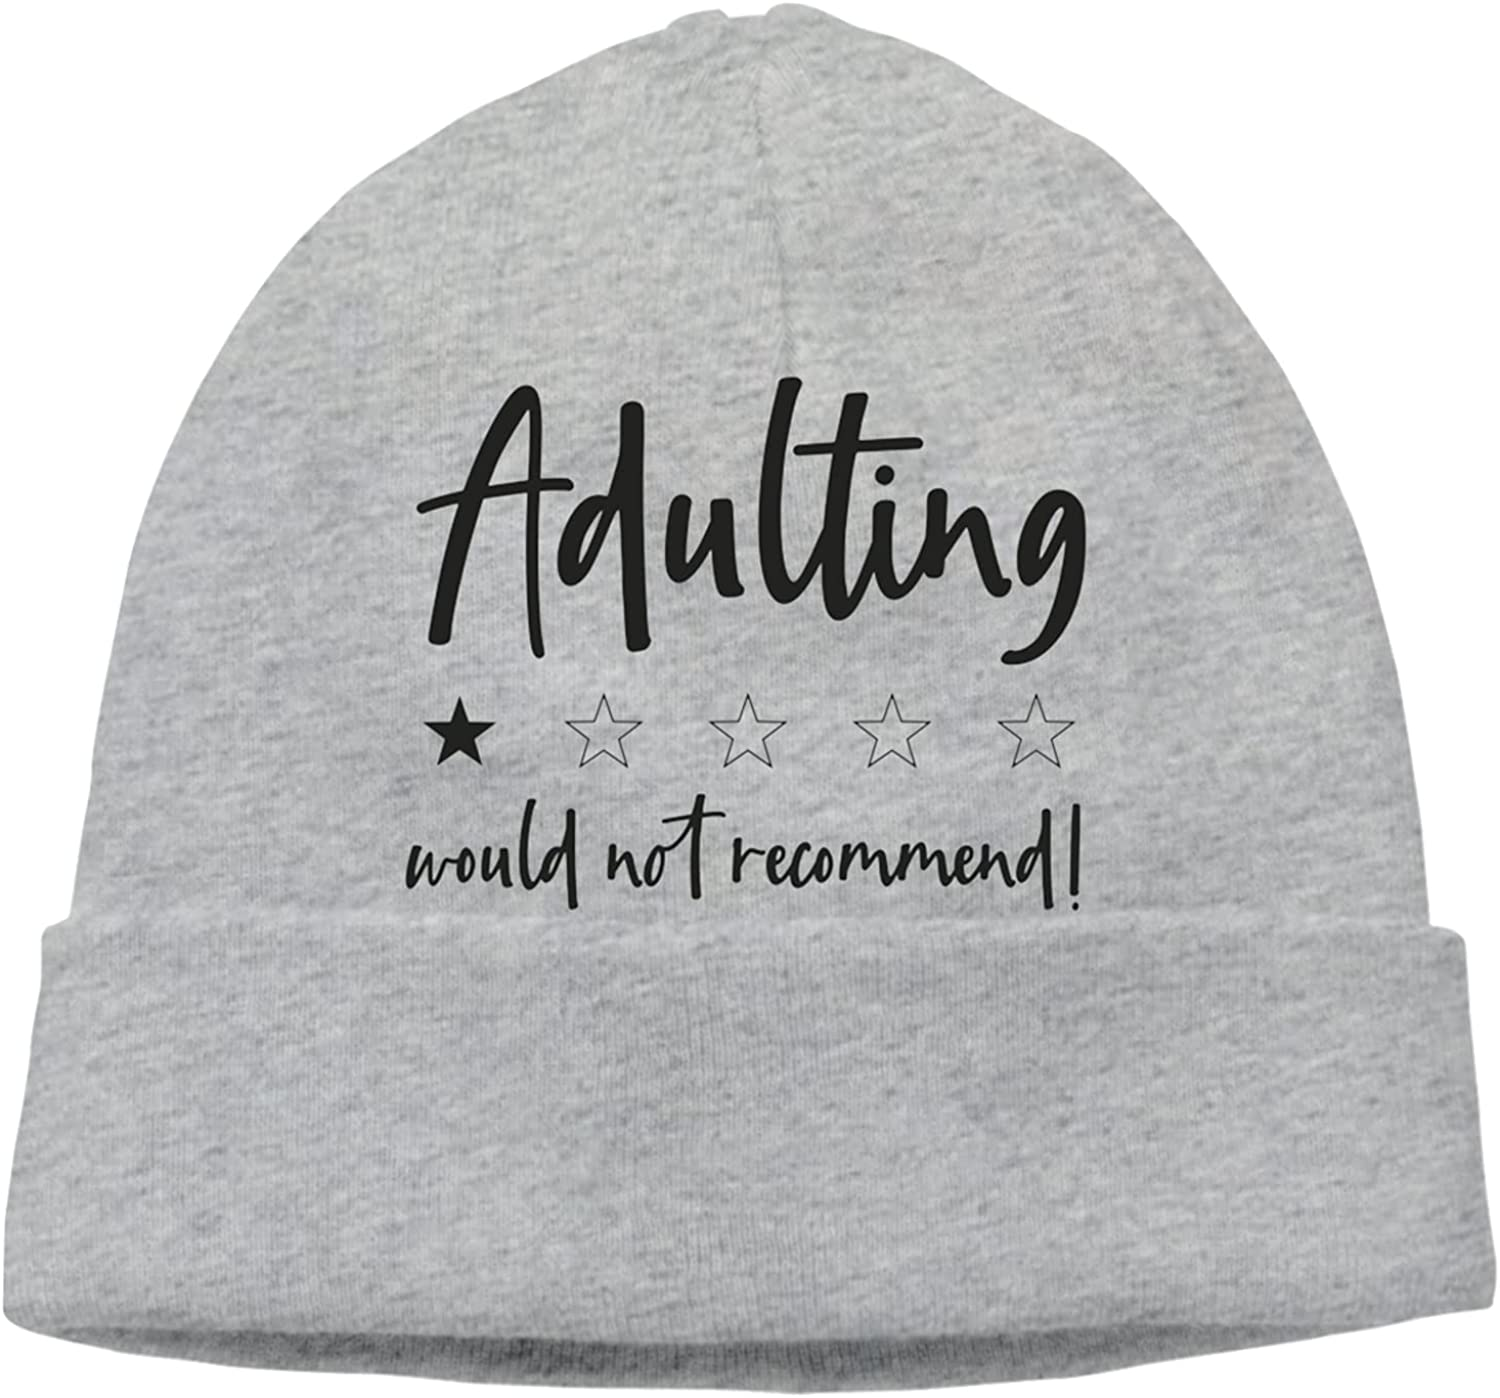 Adulting Would Oklahoma City Mall Not Recommend2 Slogan Unisex Cap Hats Fixed price for sale Beanie Warm